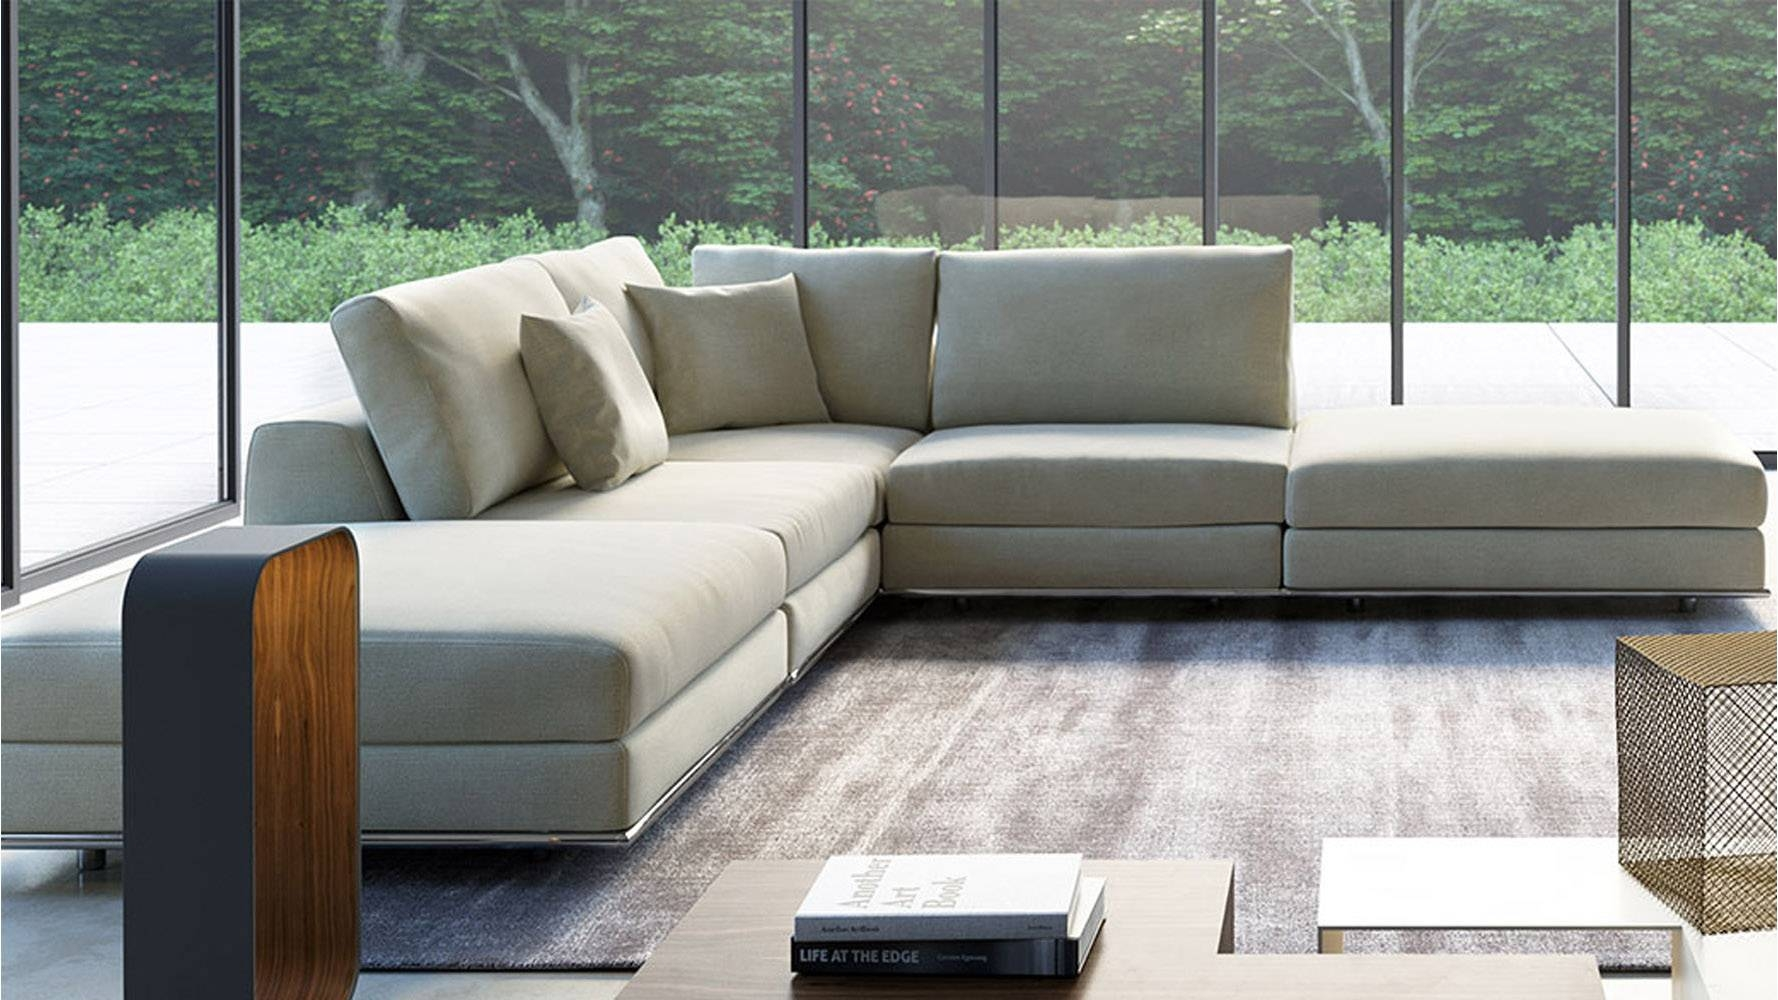 Modern Persis Armless Corner Sectional Sofa – Moonbeam | Zuri Within Armless Sectional Sofas (View 2 of 30)